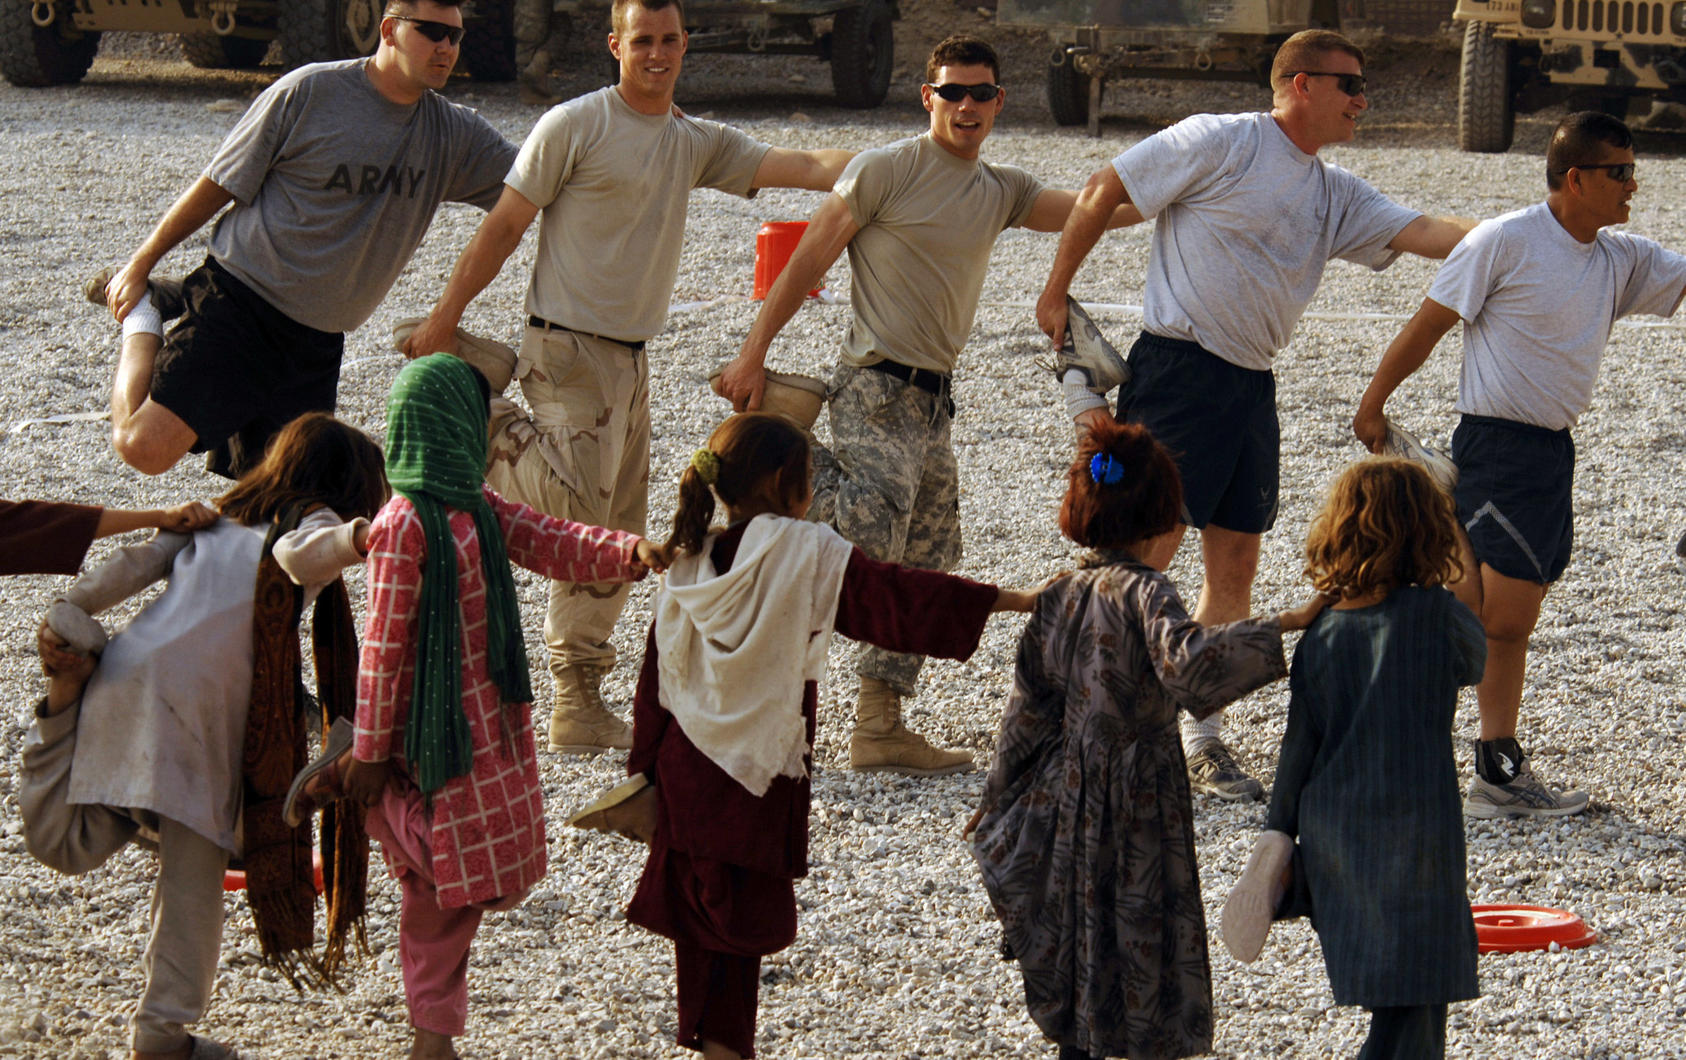 U.S. Army and Air Force personnel and local children stretch before a soccer game at the Nangarhar Provincial Reconstruction Team Forward Operating Base in Jalalabad, Afghanistan.